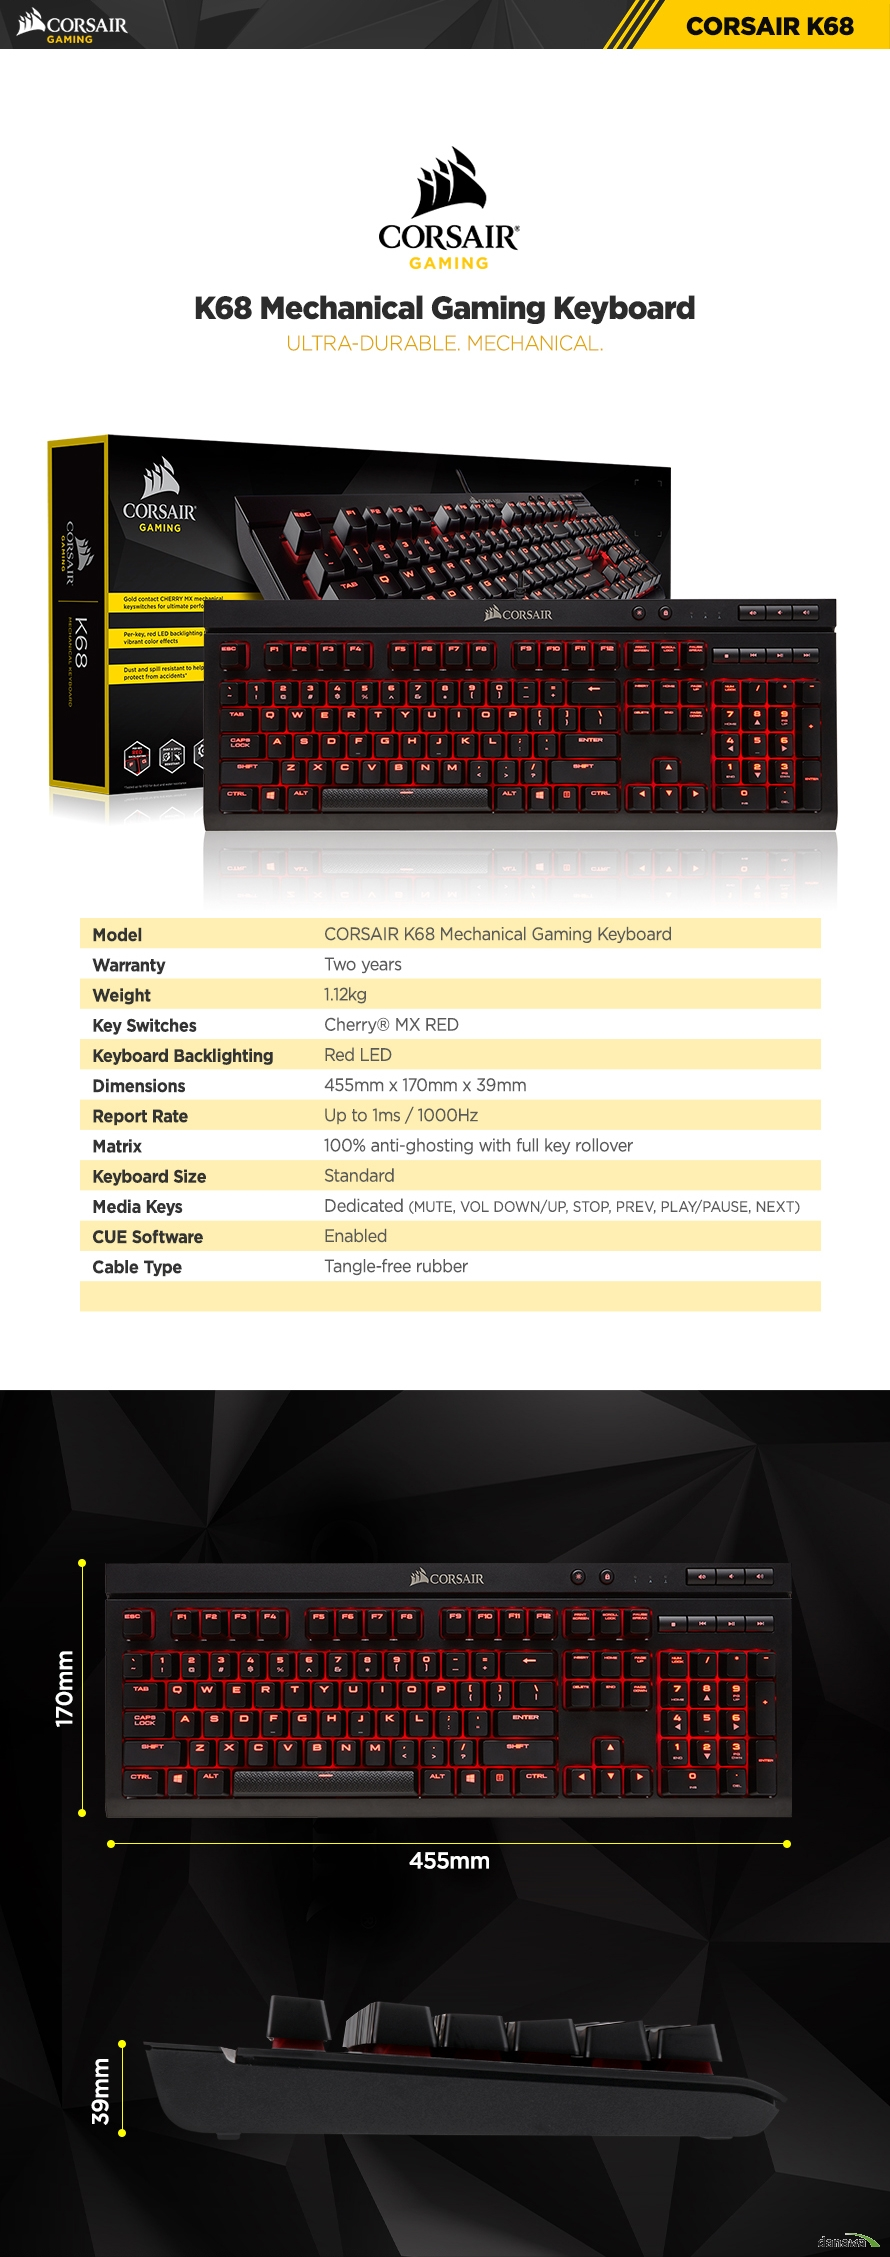 K68 Mechanical Gaming Keyboard ULTRA-DURABLE. MECHANICAL.Model CORSAIR K68 Mechanical Gaming KeyboardWarranty Two yearsWeight 1.12kgKey Switches Cherry MX  redKeyboard Backlighting Blue LEDDimensions 455mm x 170mm x 39mmReport Rate Up to 1ms / 1000HzMatrix 100% anti-ghosting with full key rolloverKeyboard Size StandardMedia Keys Dedicated (MUTE, VOL DOWN/UP, STOP, PREV, PLAY/PAUSE, NEXT)CUE Software EnabledCable Type Tangle-free rubberWIN Lock Yes